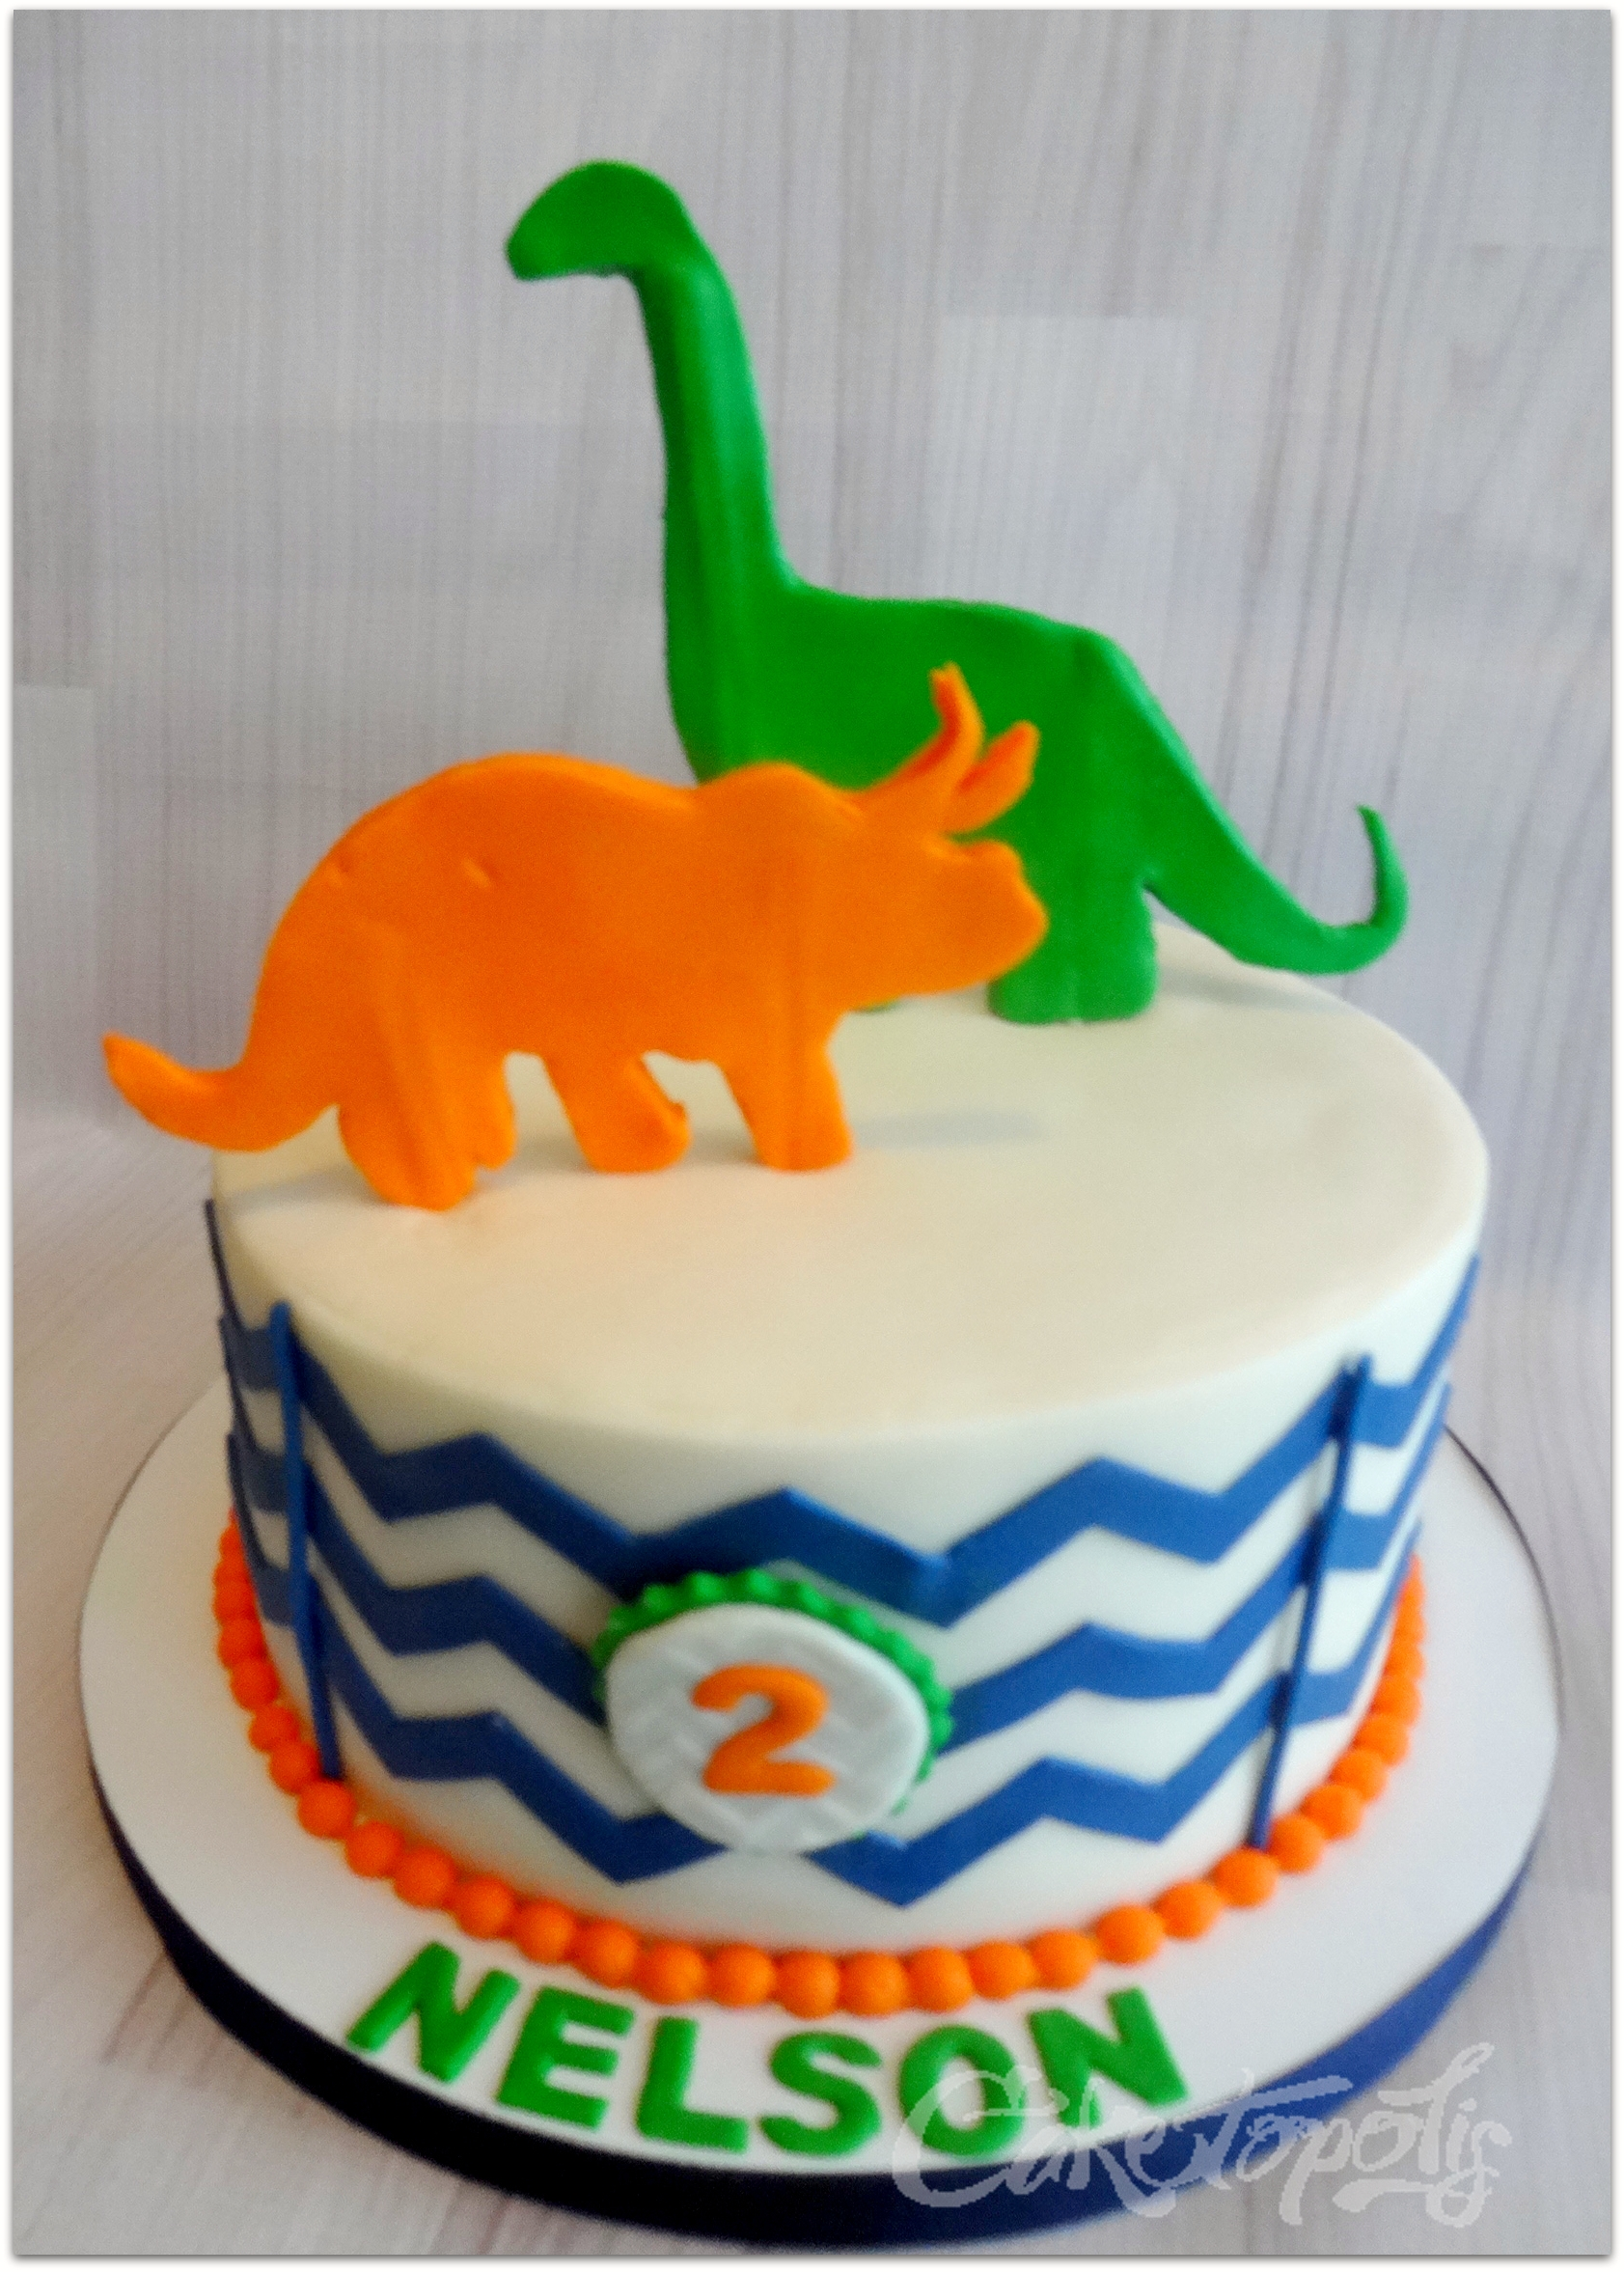 "Dinosaur Chevron Cake Dinosaur silhouette chevron birthday cake. 8"" cake using Marvelous Molds small chevron only."